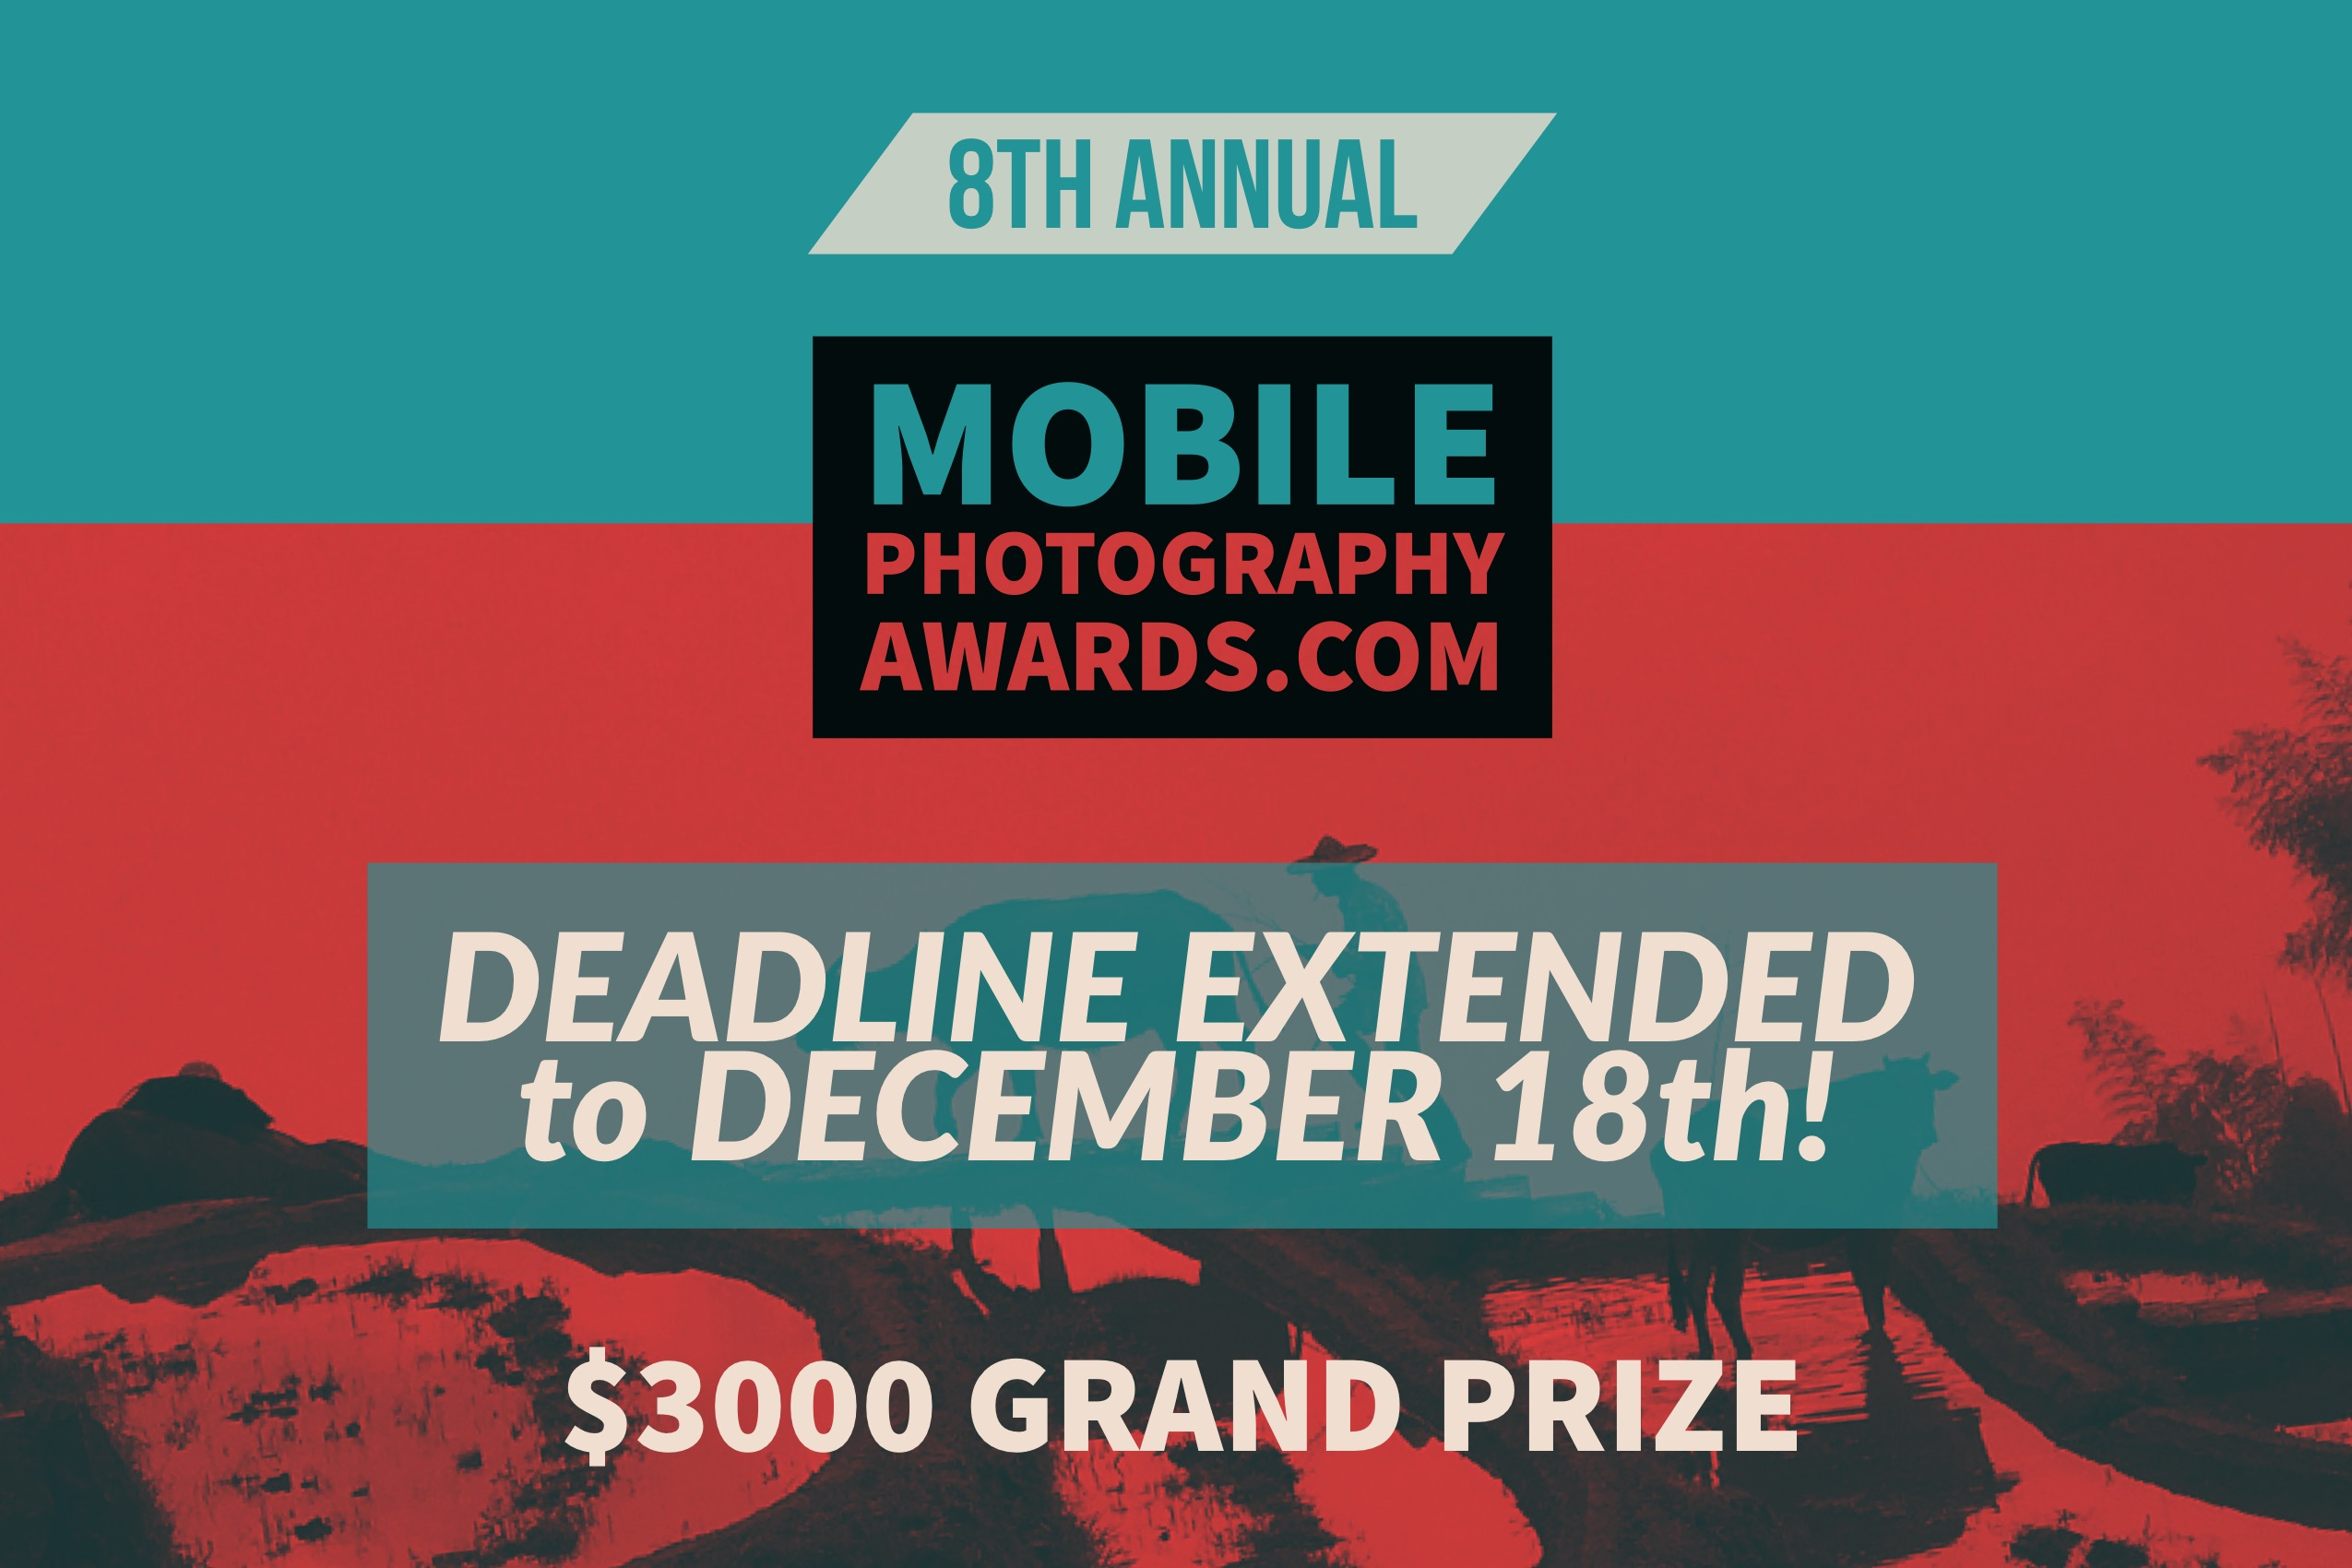 Mobile Photography Awards - Mobile Photography Awards